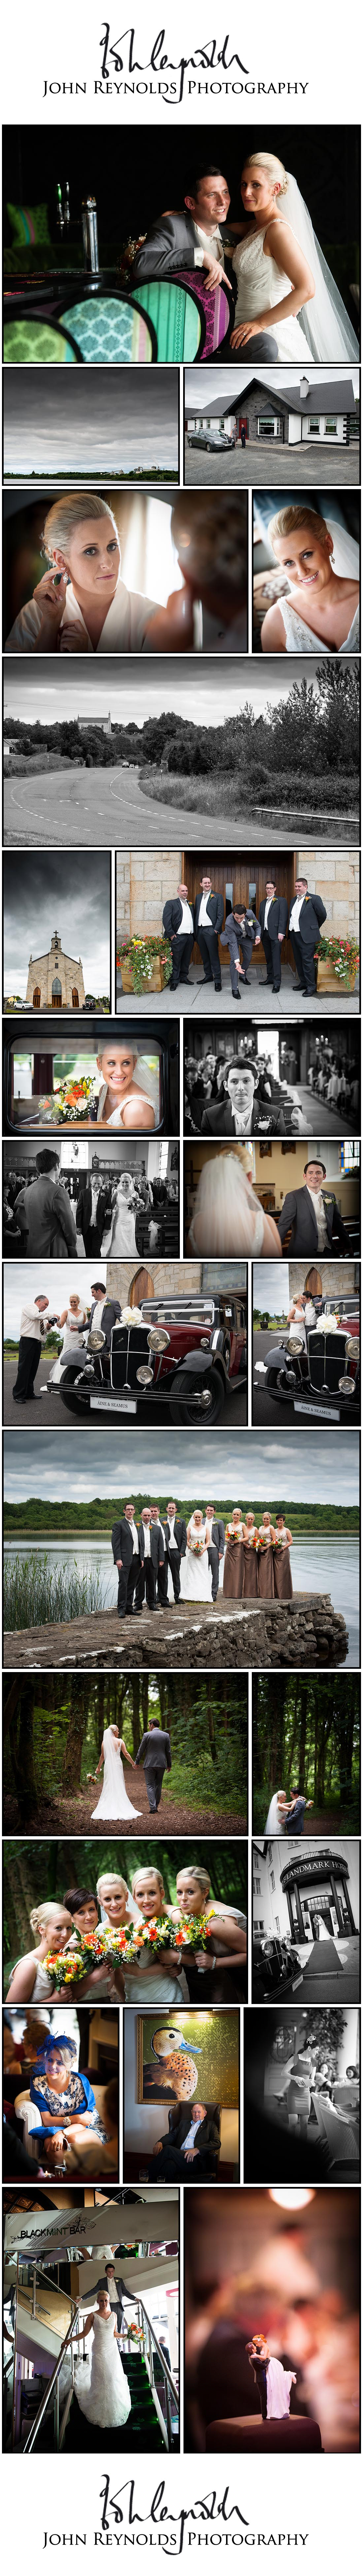 Blog Collage-Aine & Seamus